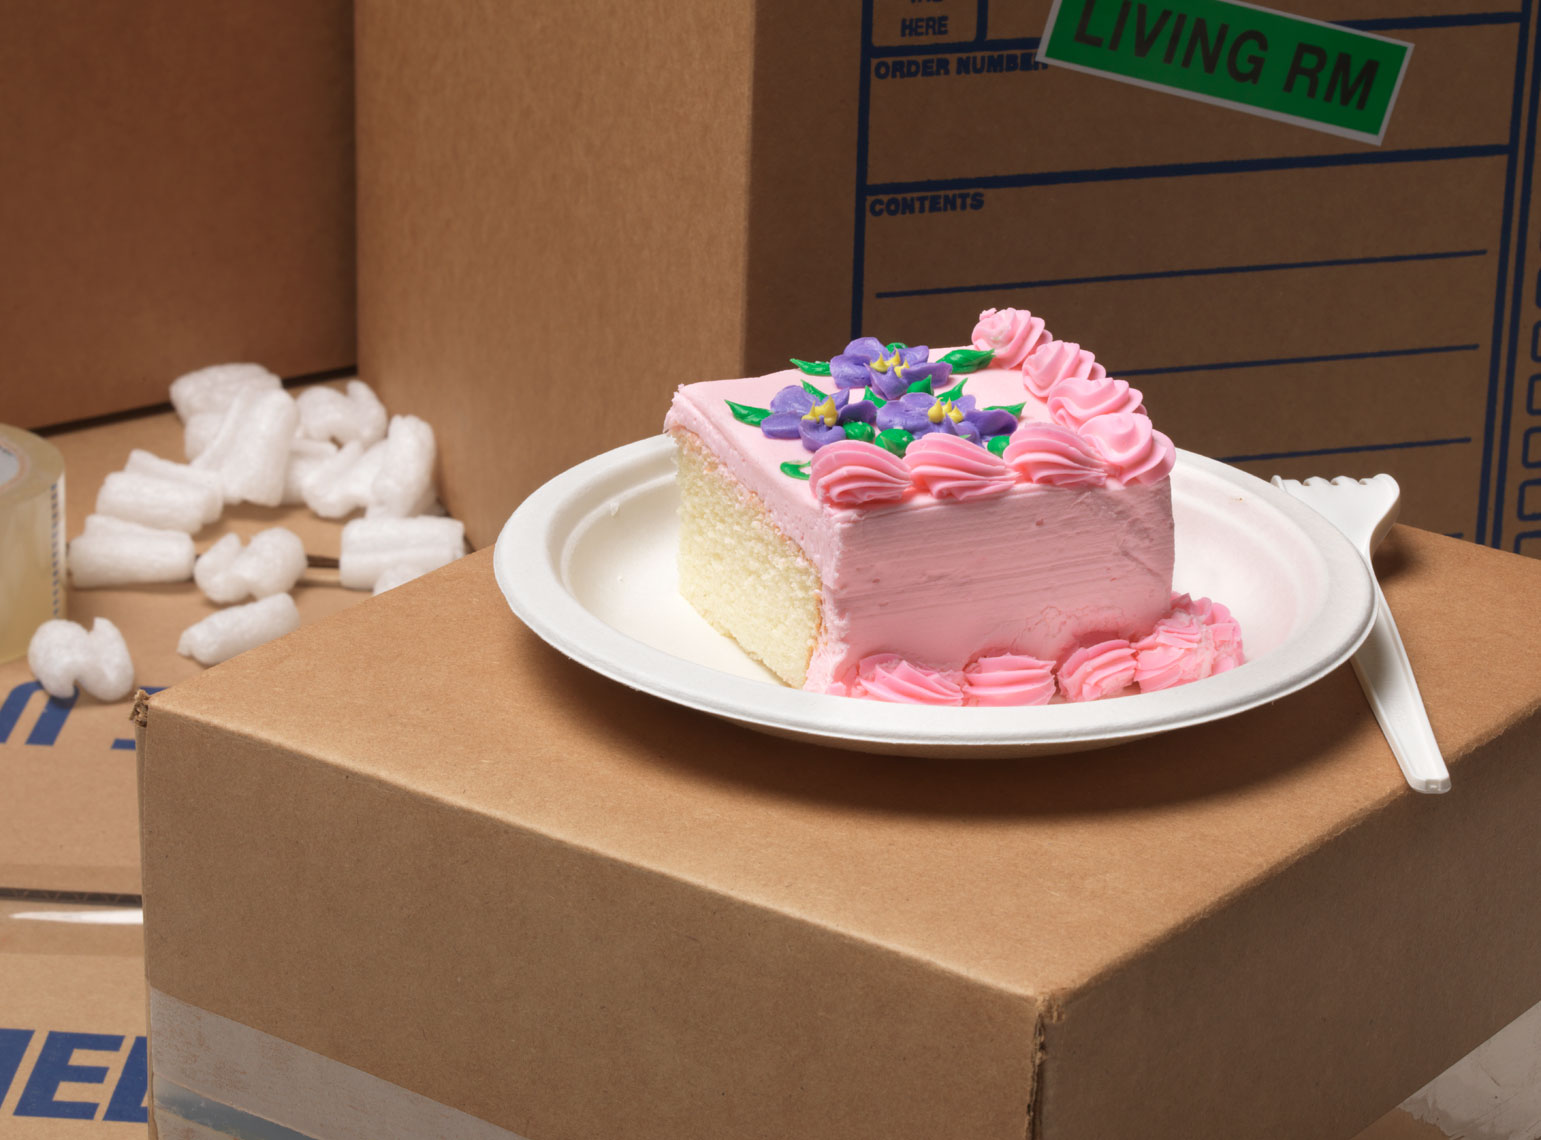 cake on moving boxes treat for working hard